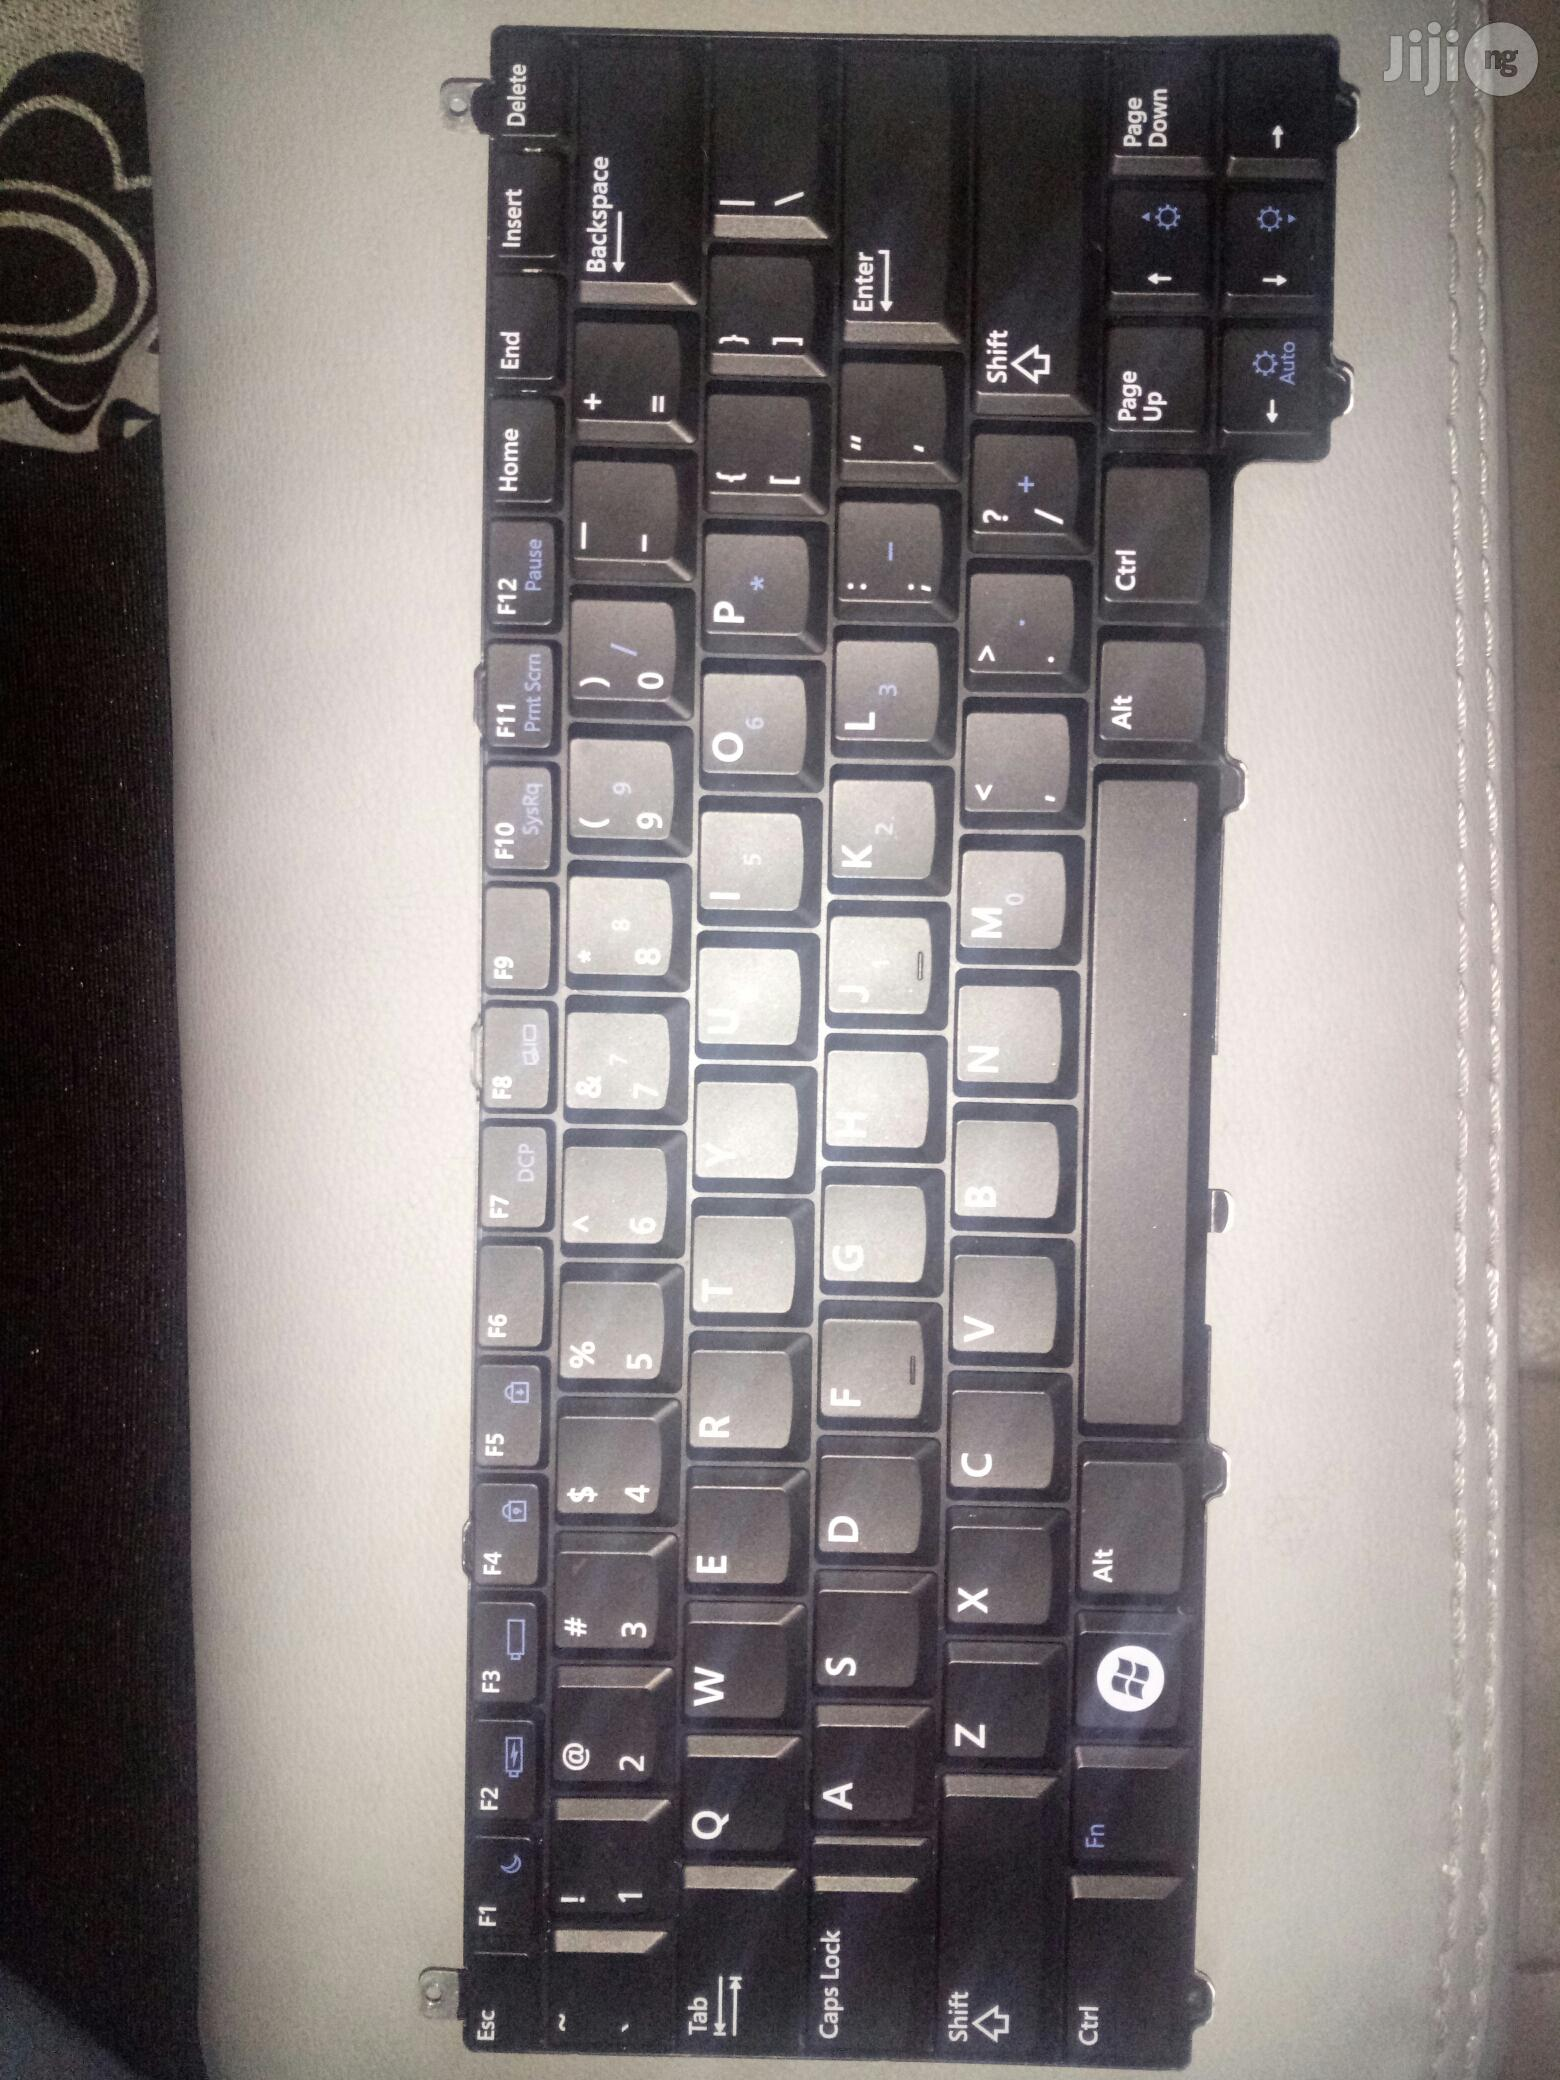 Dell Latitude E4200 Keyboard | Computer & IT Services for sale in Port-Harcourt, Rivers State, Nigeria